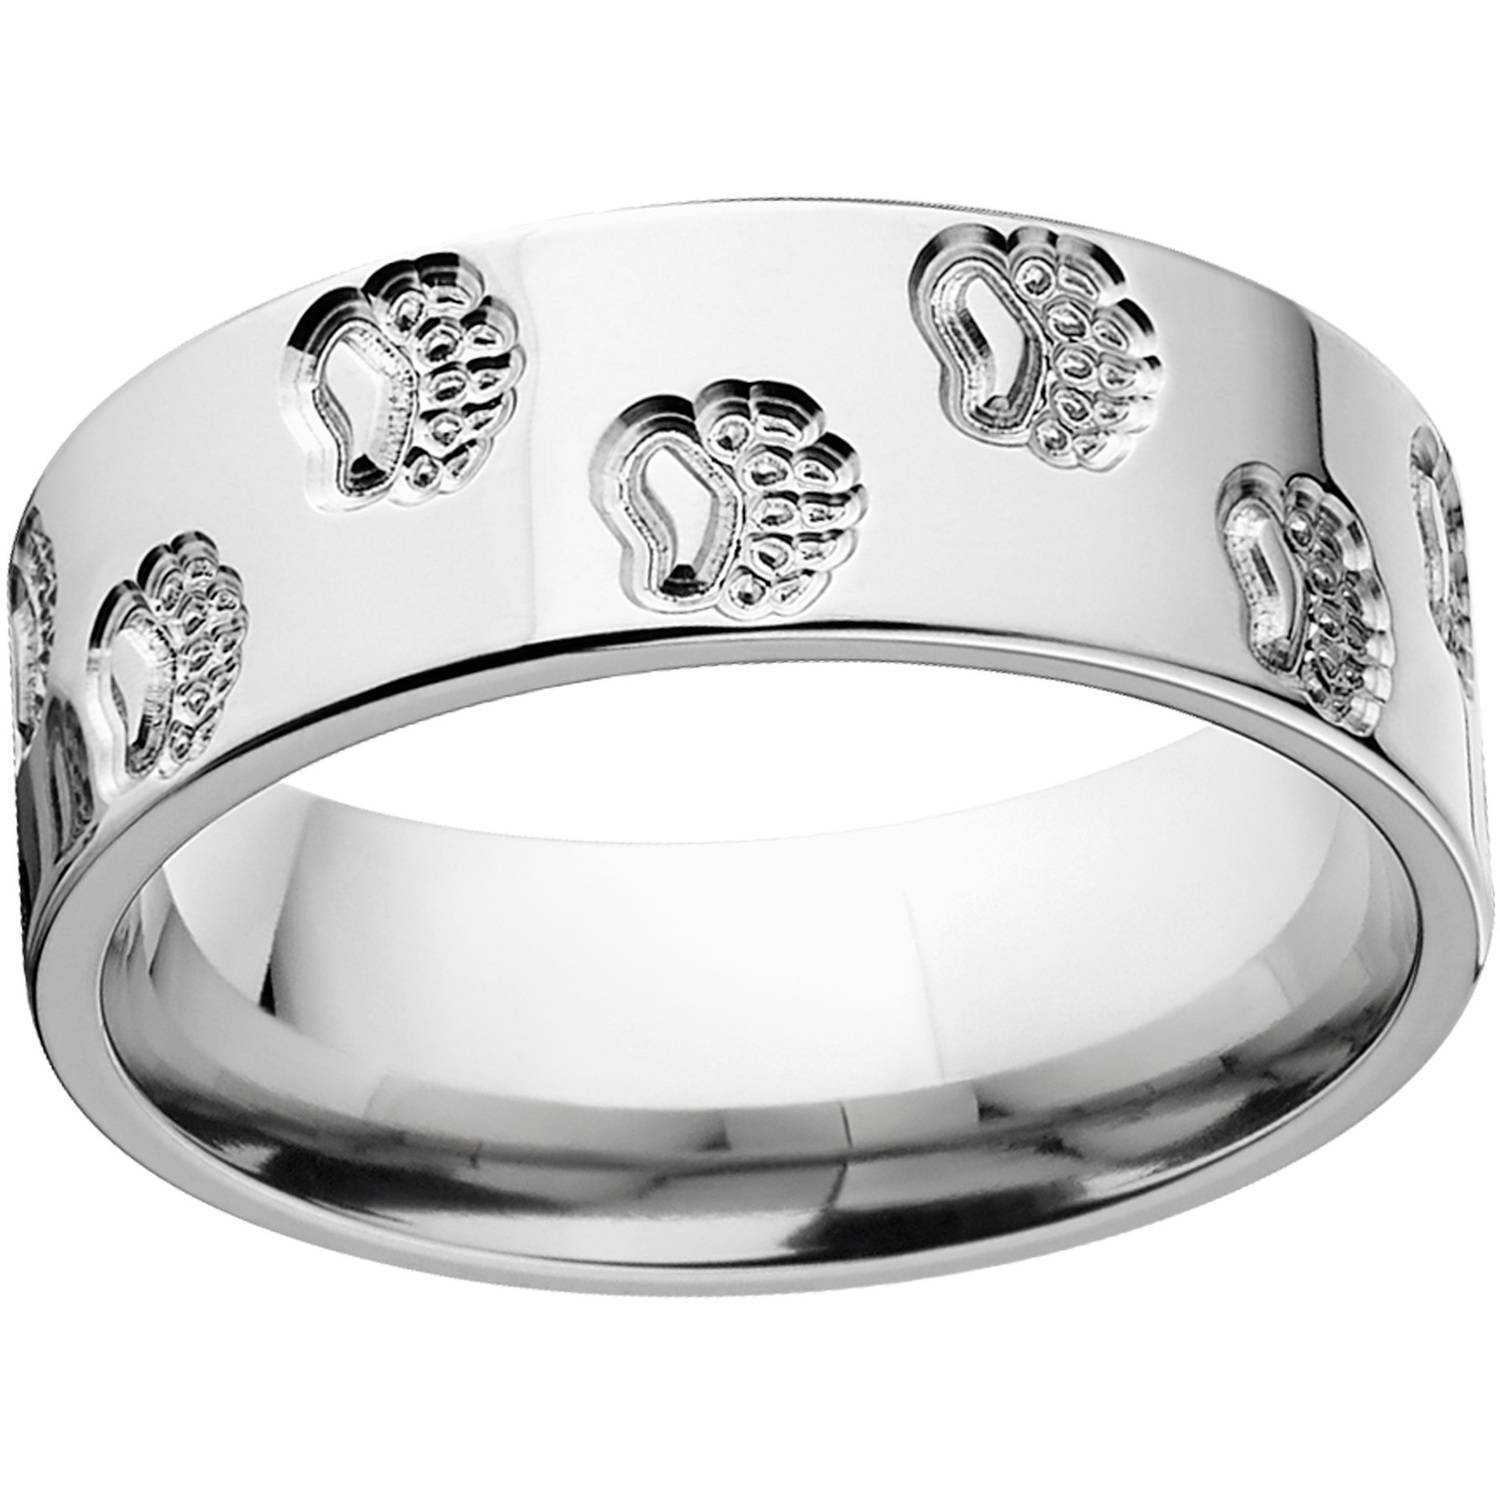 Men's Bear Track 8mm Stainless Steel Wedding Band with Comfort Fit Design